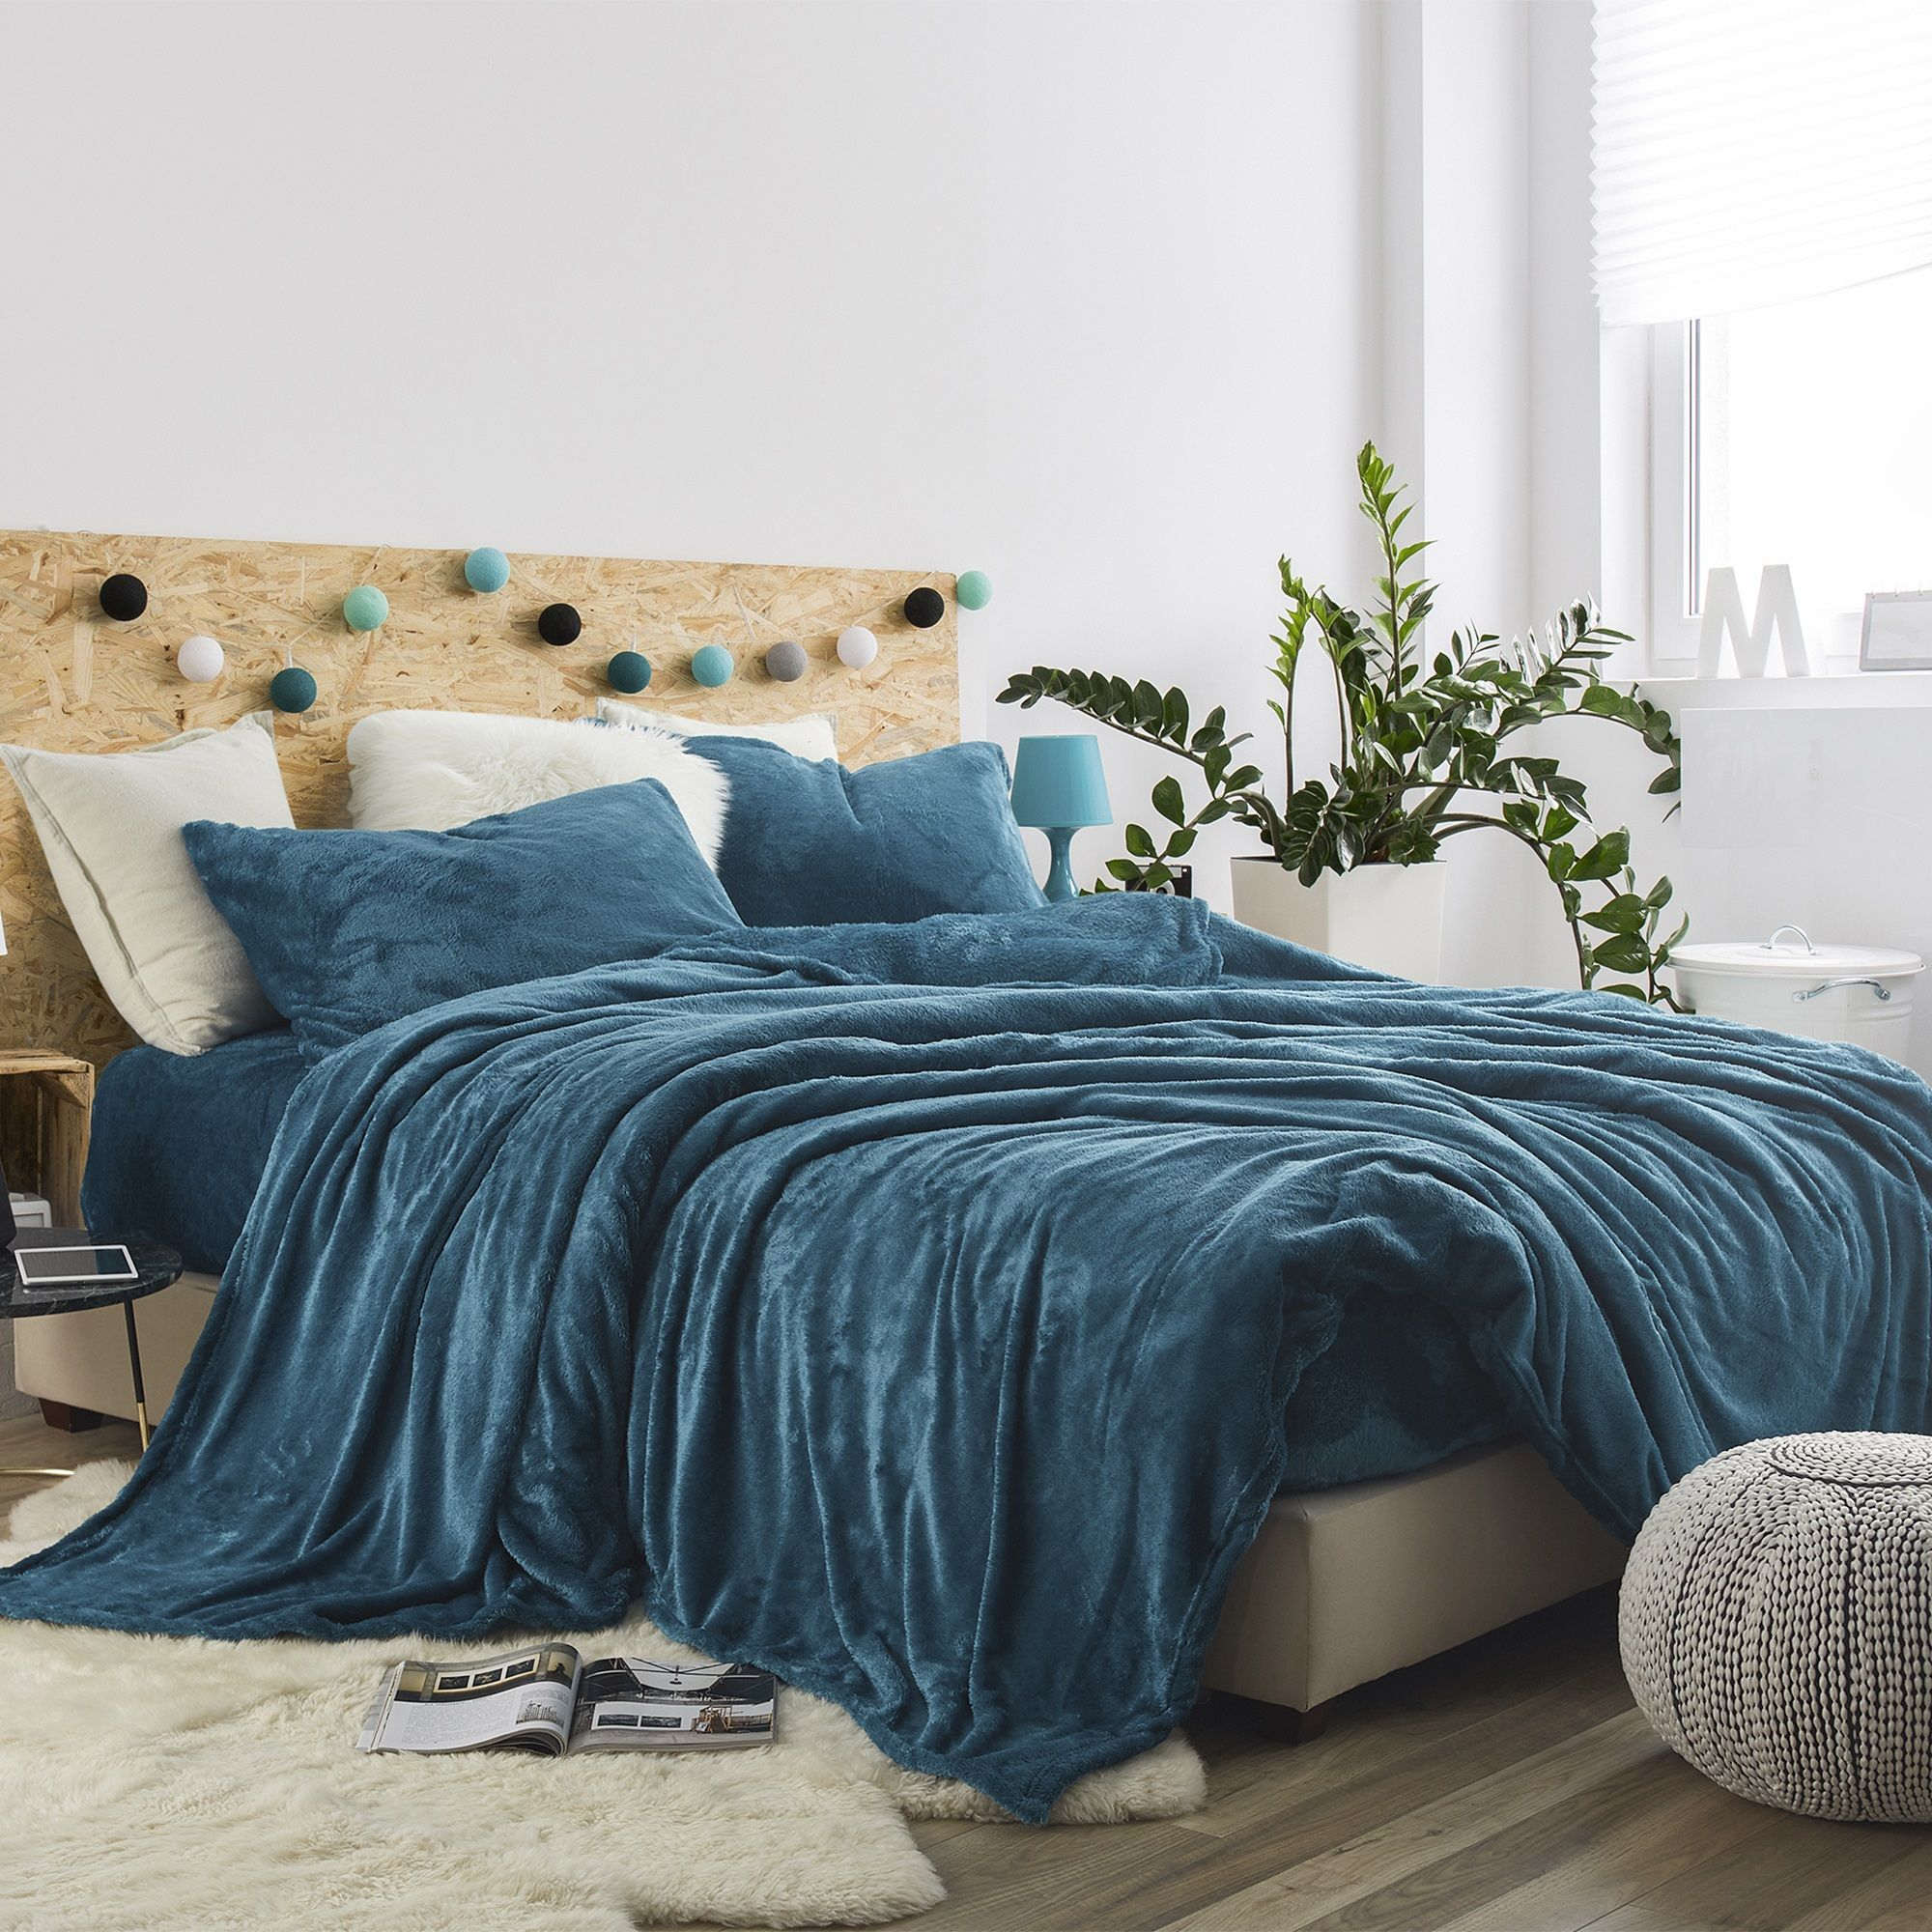 Home in 2020 Comfy sheets, Sheet sets full, Comfy bed